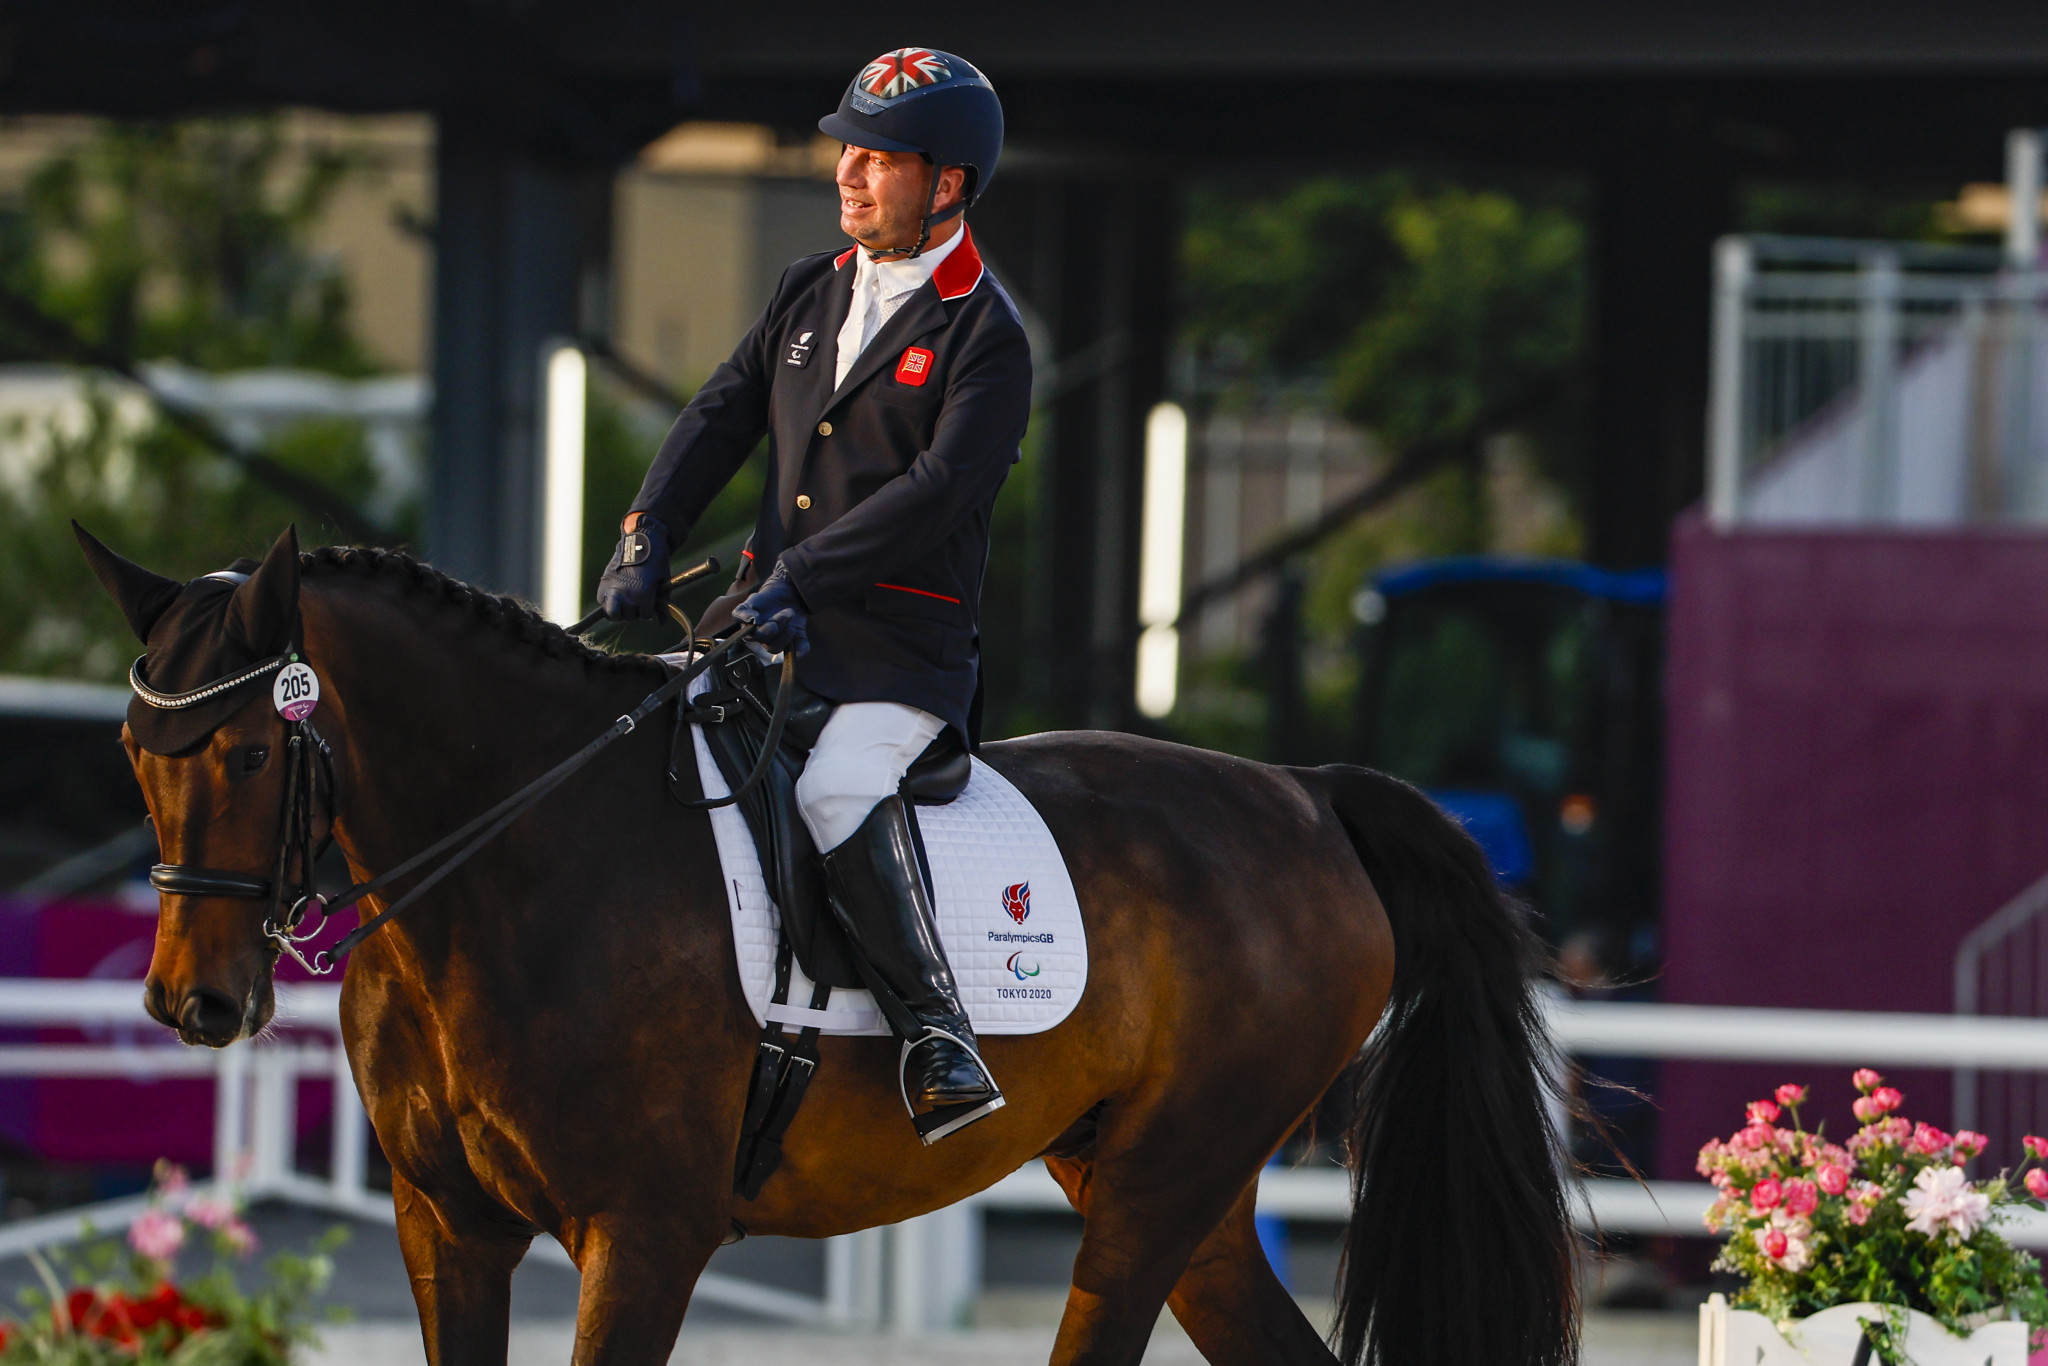 Pearson wins 12th Paralympic gold on opening day of Tokyo 2020 equestrian